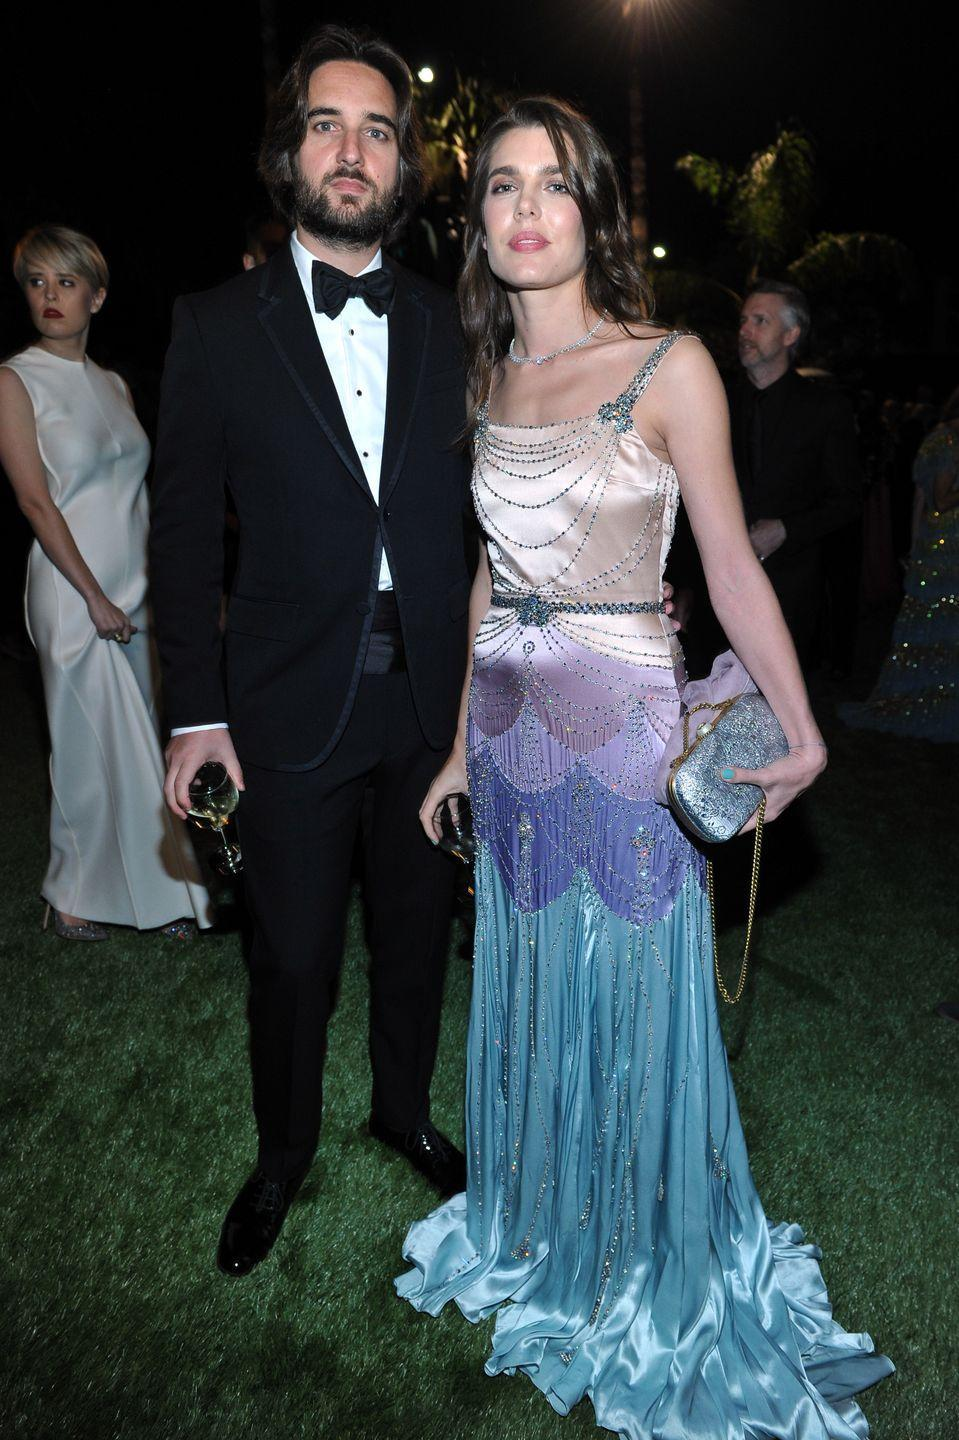 <p>Charlotte and husband, film producer Dimitri Rassam, are often seen at society events in the United States, London, Paris, and in Charlotte's native Monaco. The pair have a son named Balthazar, who is 12th in line to the throne. Charlotte also has a son, Raphaël, from a previous relationship. </p>